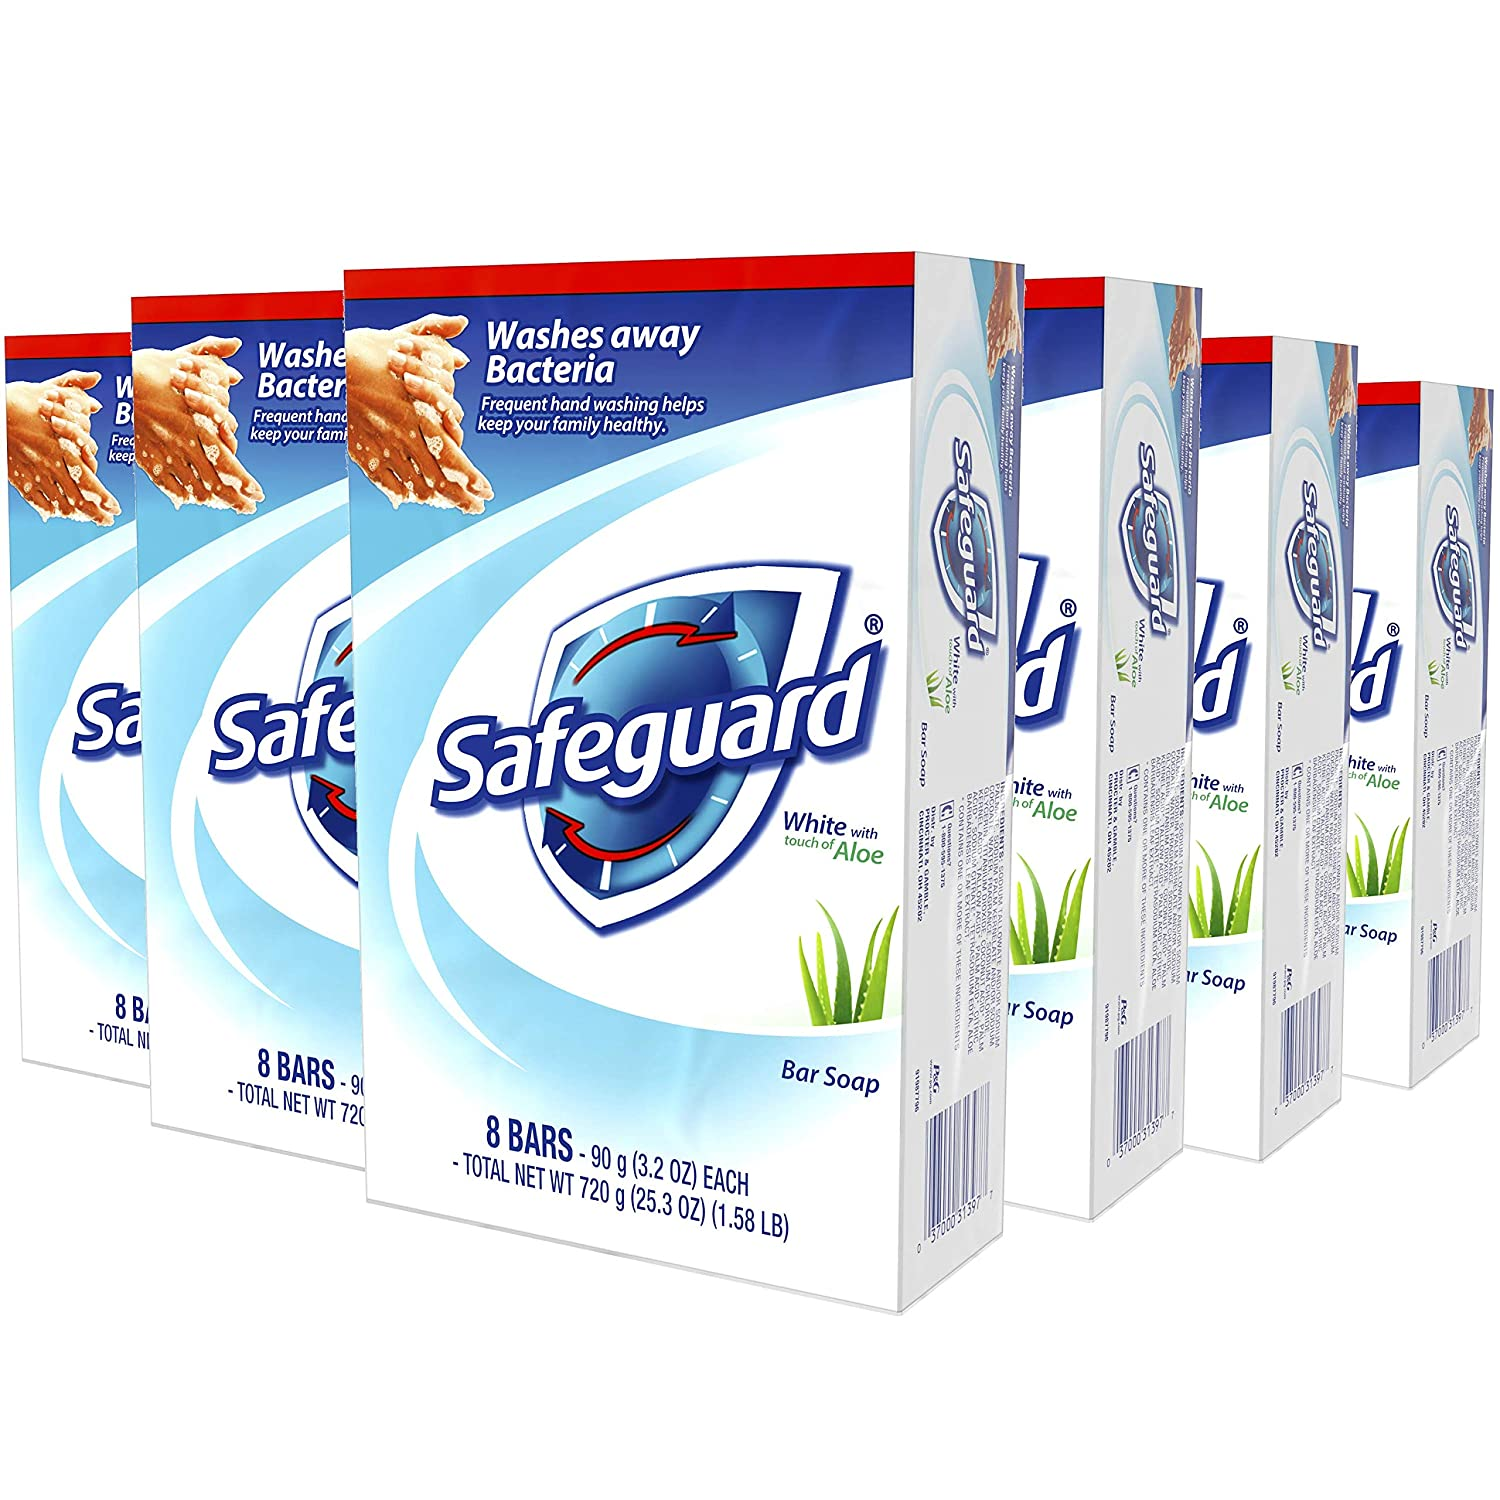 Safeguard Deodorant Bar Soap, Washes Away Bacteria, White with Touch of Aloe, 8 Bars, (Pack of 6, total of 48 Bars) : Beauty